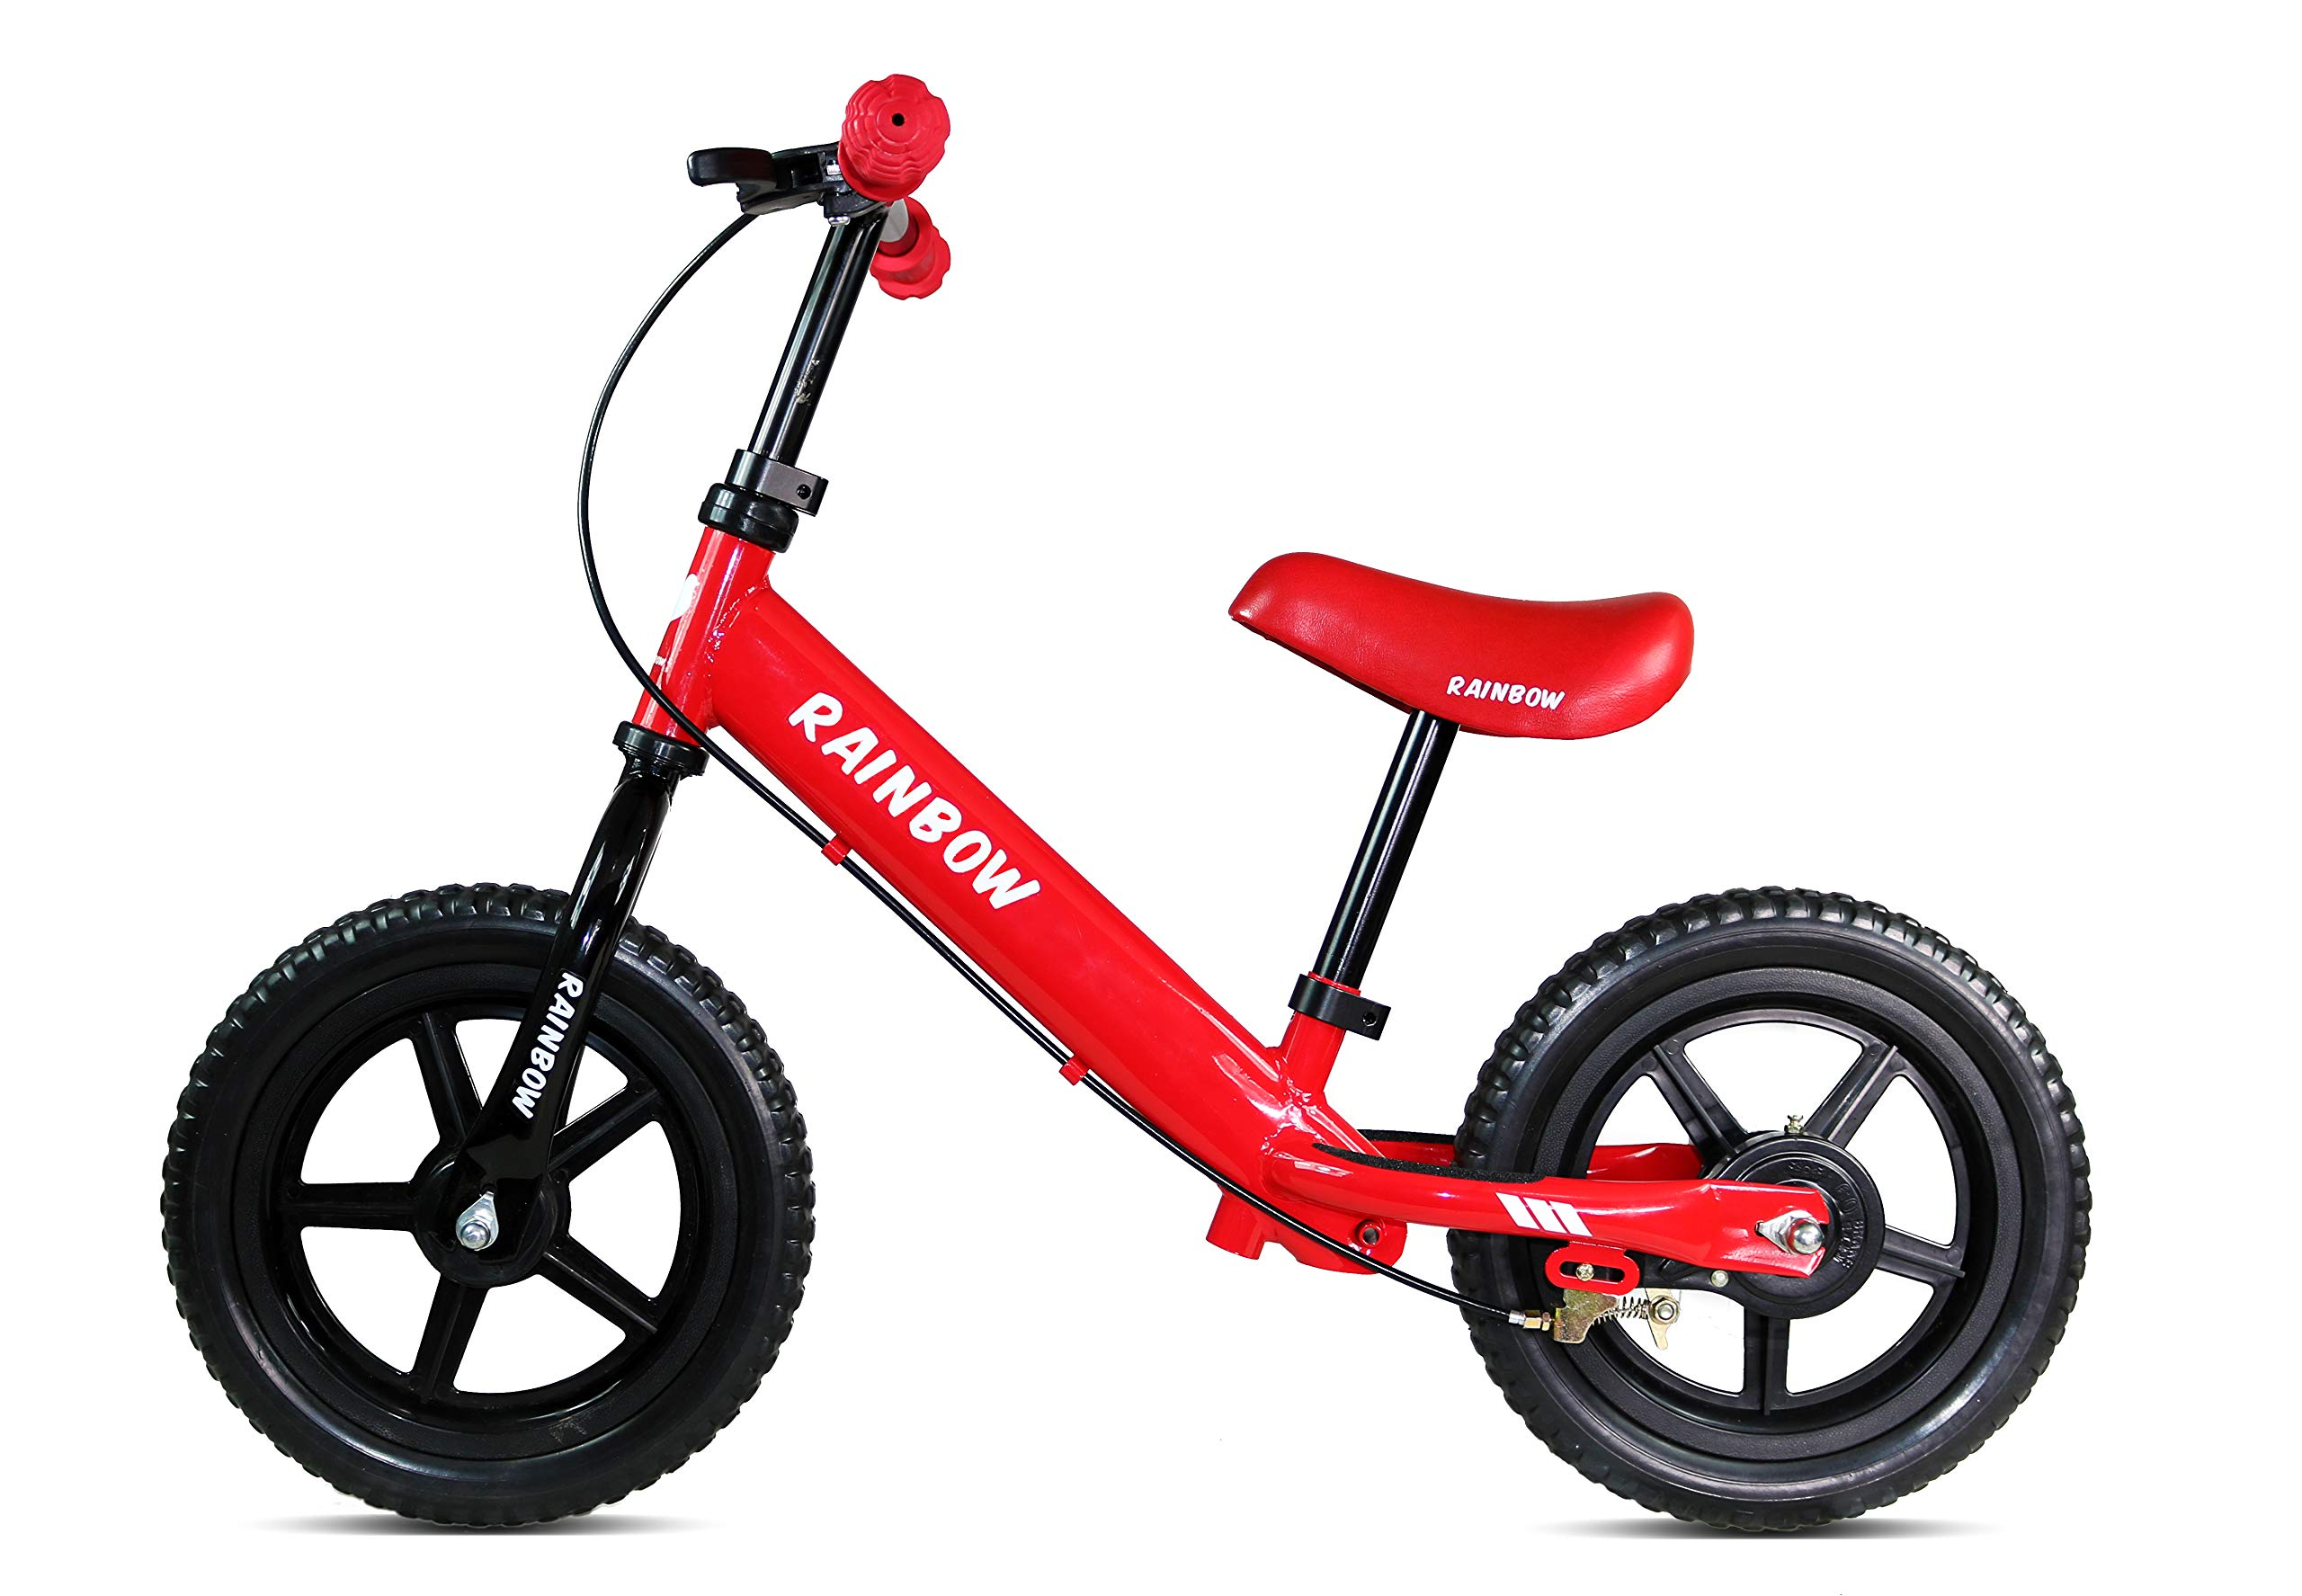 Rainbow Balance Bike for Kids (Red) 12'' Wheels No-Pedals Bike for Boys & Girls 2-5 Years Old, Children Learn How to Balance Them self on a Bike Safely with Brakes